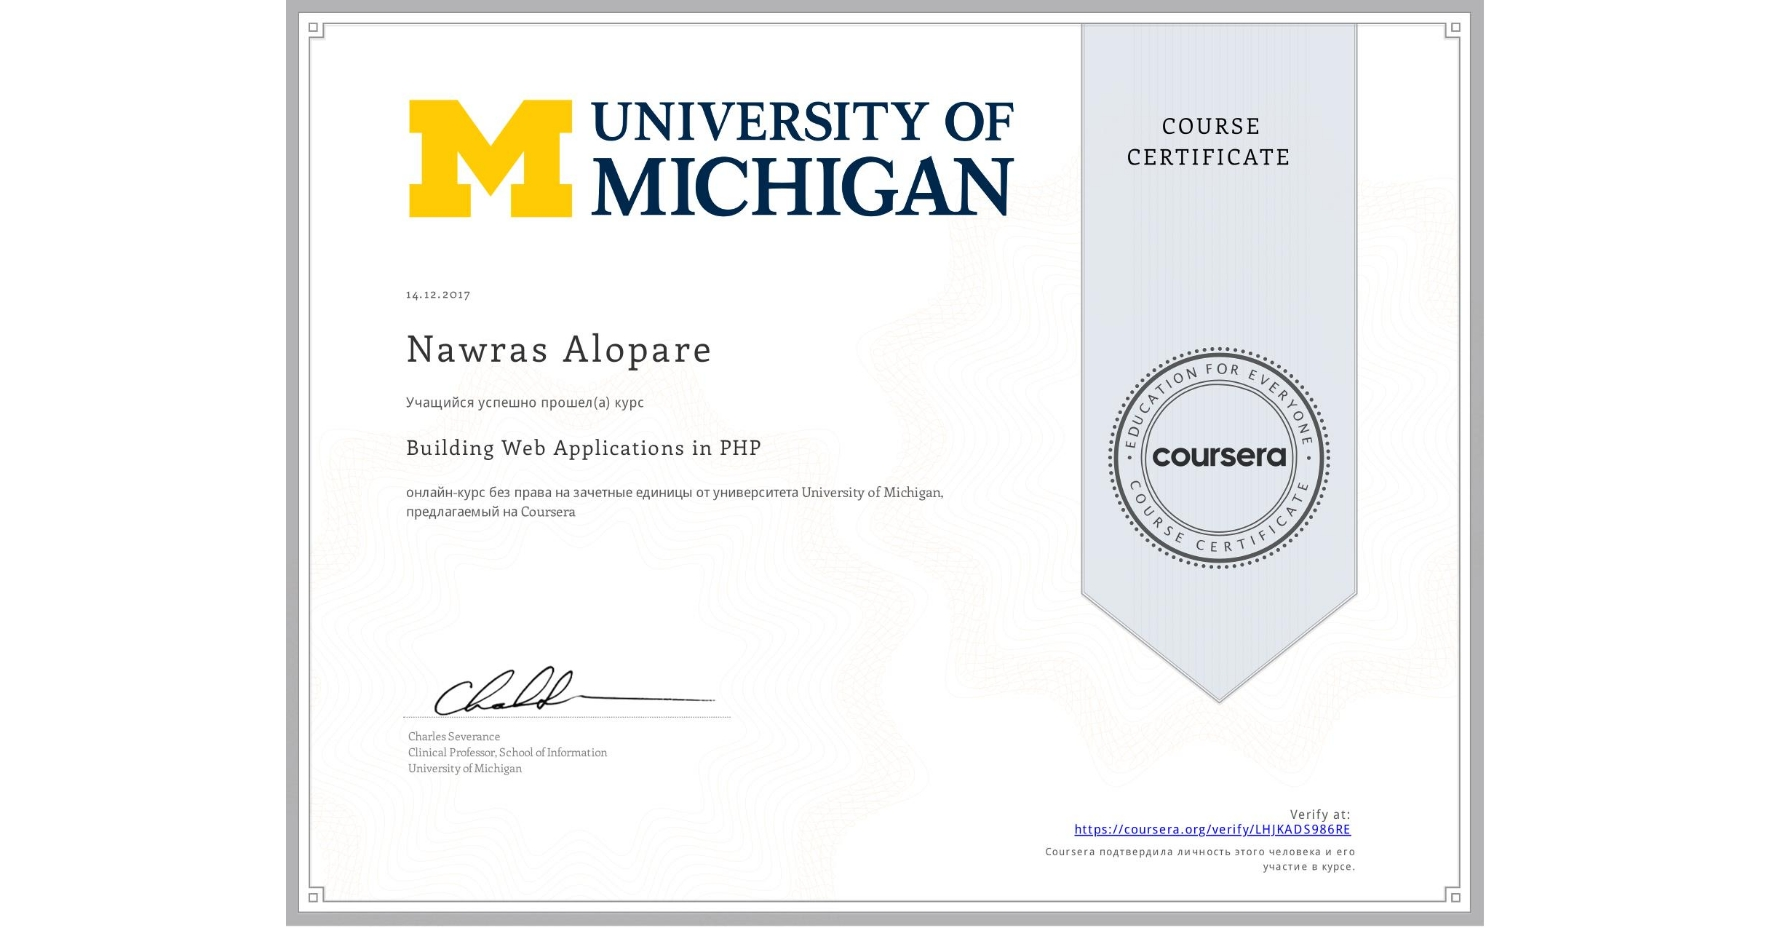 View certificate for Nawras Alopare, Building Web Applications in PHP, an online non-credit course authorized by University of Michigan and offered through Coursera